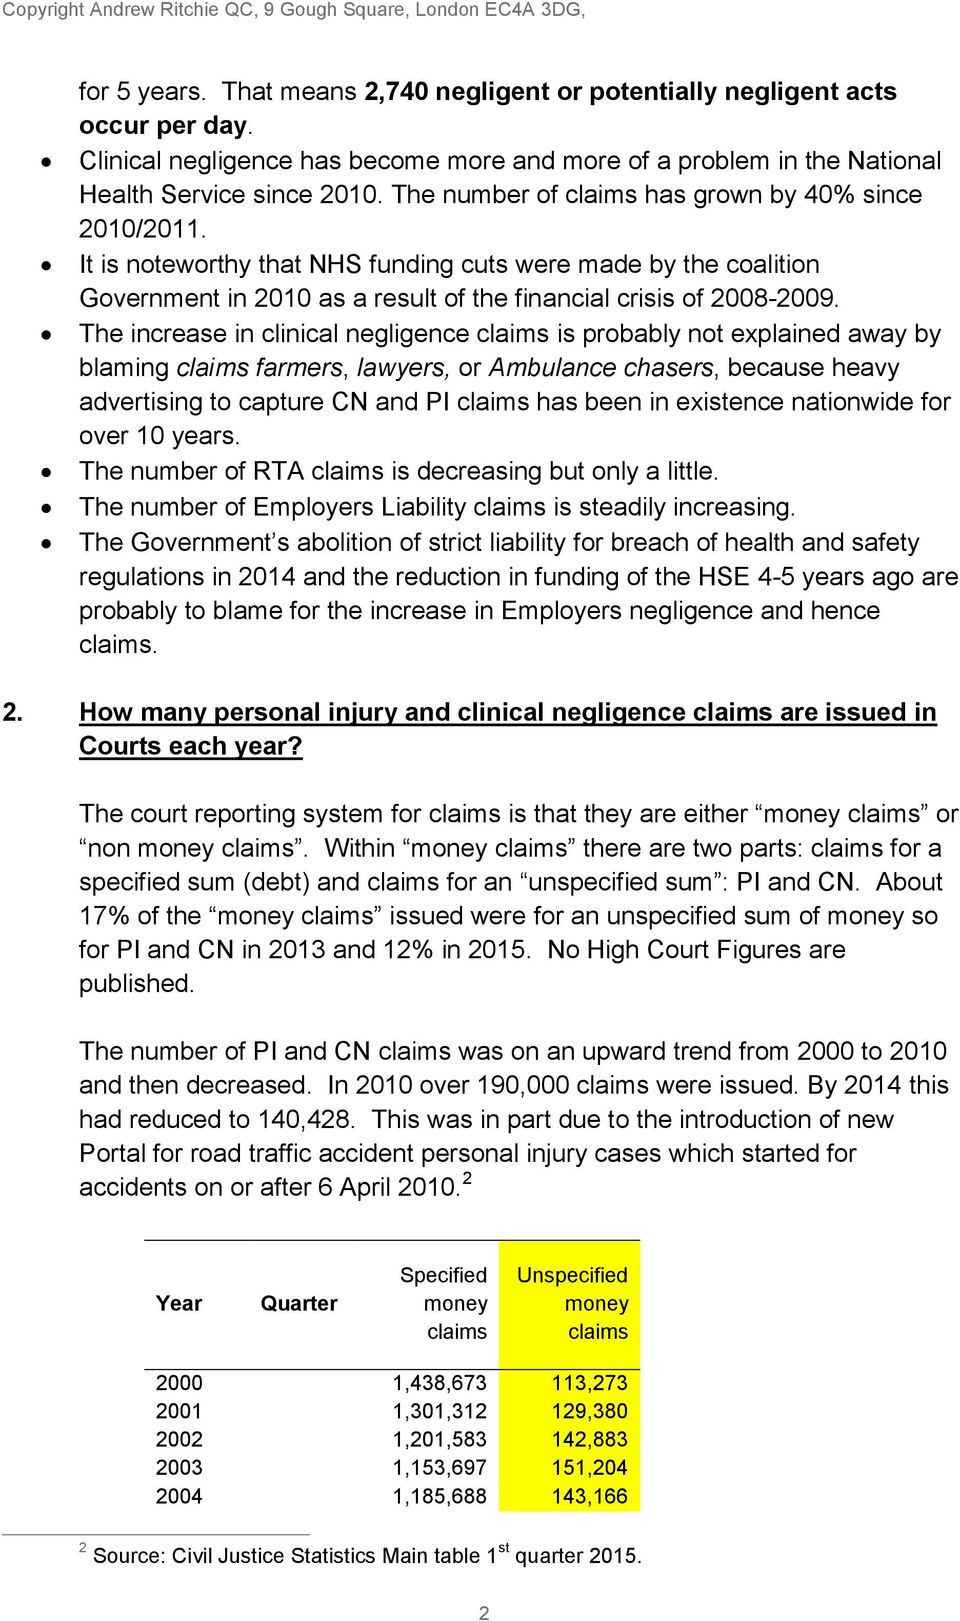 The increase in clinical negligence claims is probably not explained away by blaming claims farmers, lawyers, or Ambulance chasers, because heavy advertising to capture CN and PI claims has been in